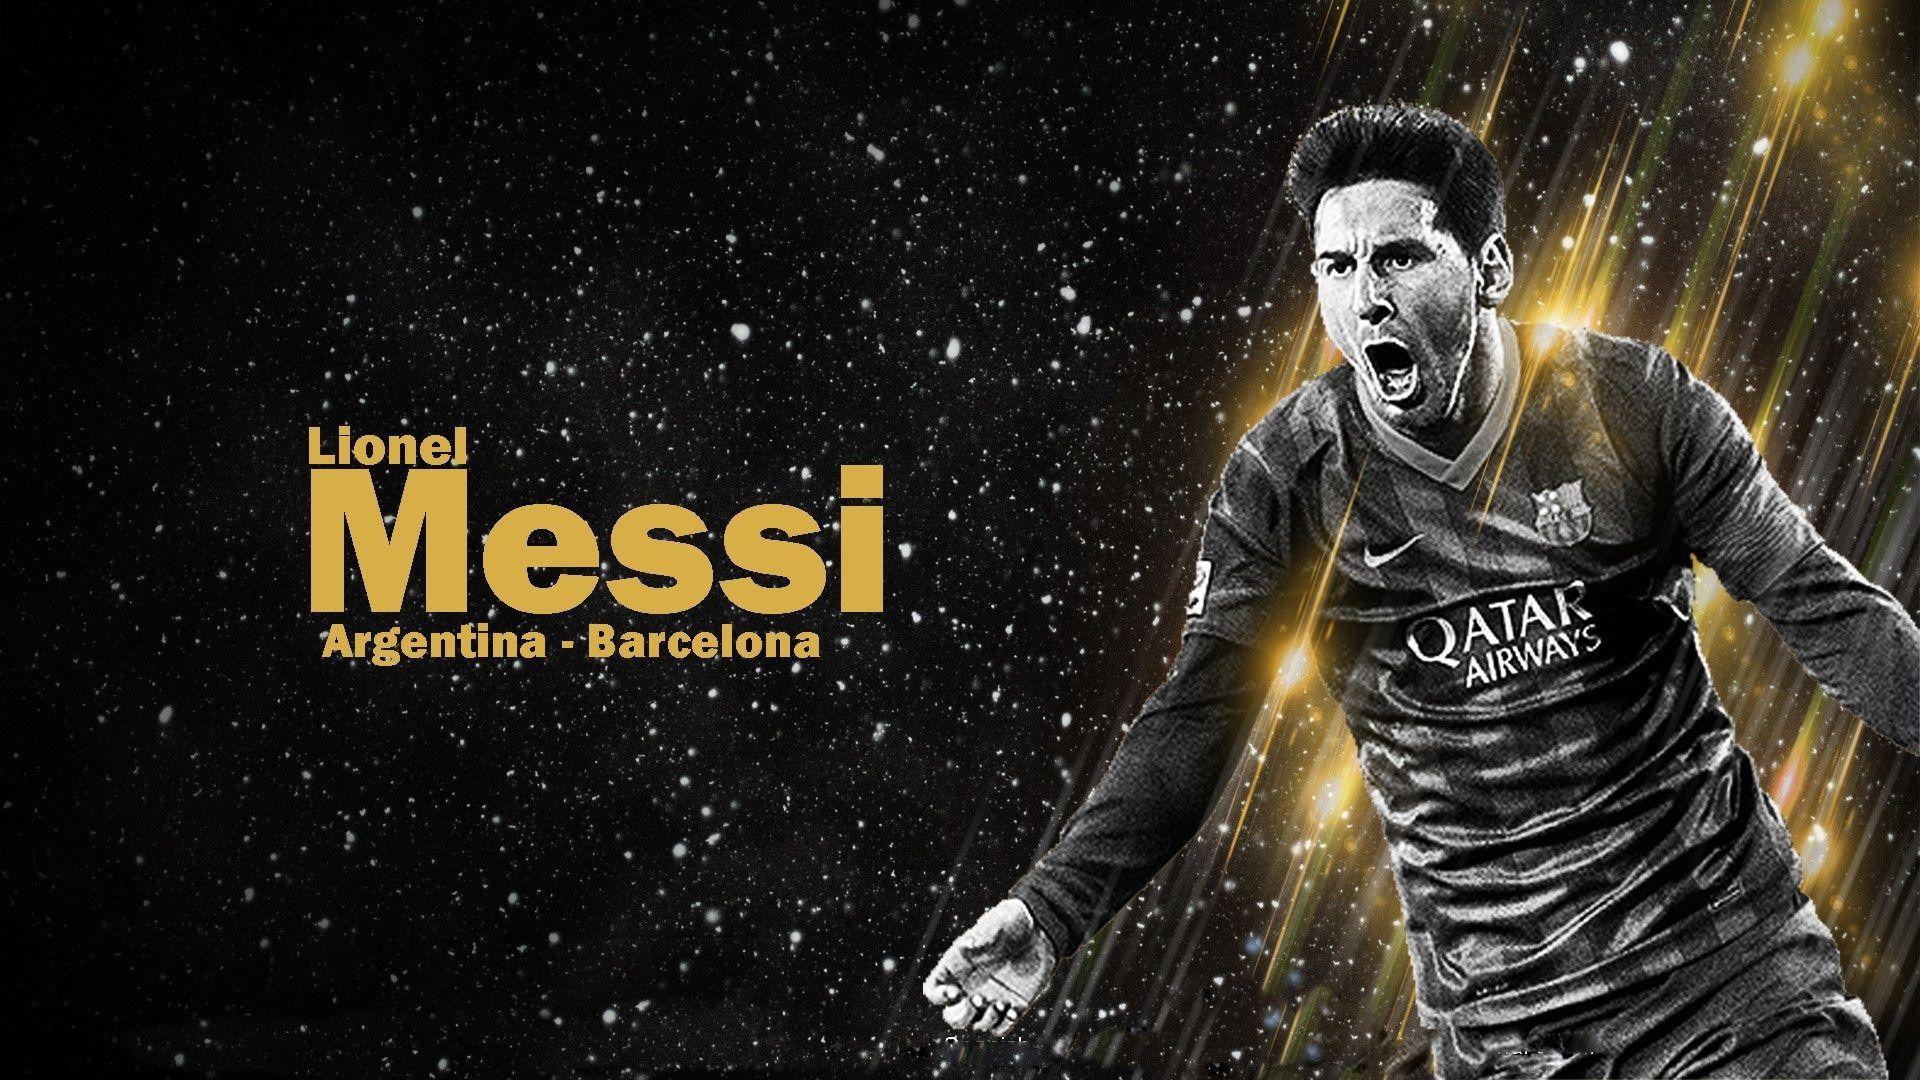 New Lionel Messi HD Images Wallpapers Pictures 2017